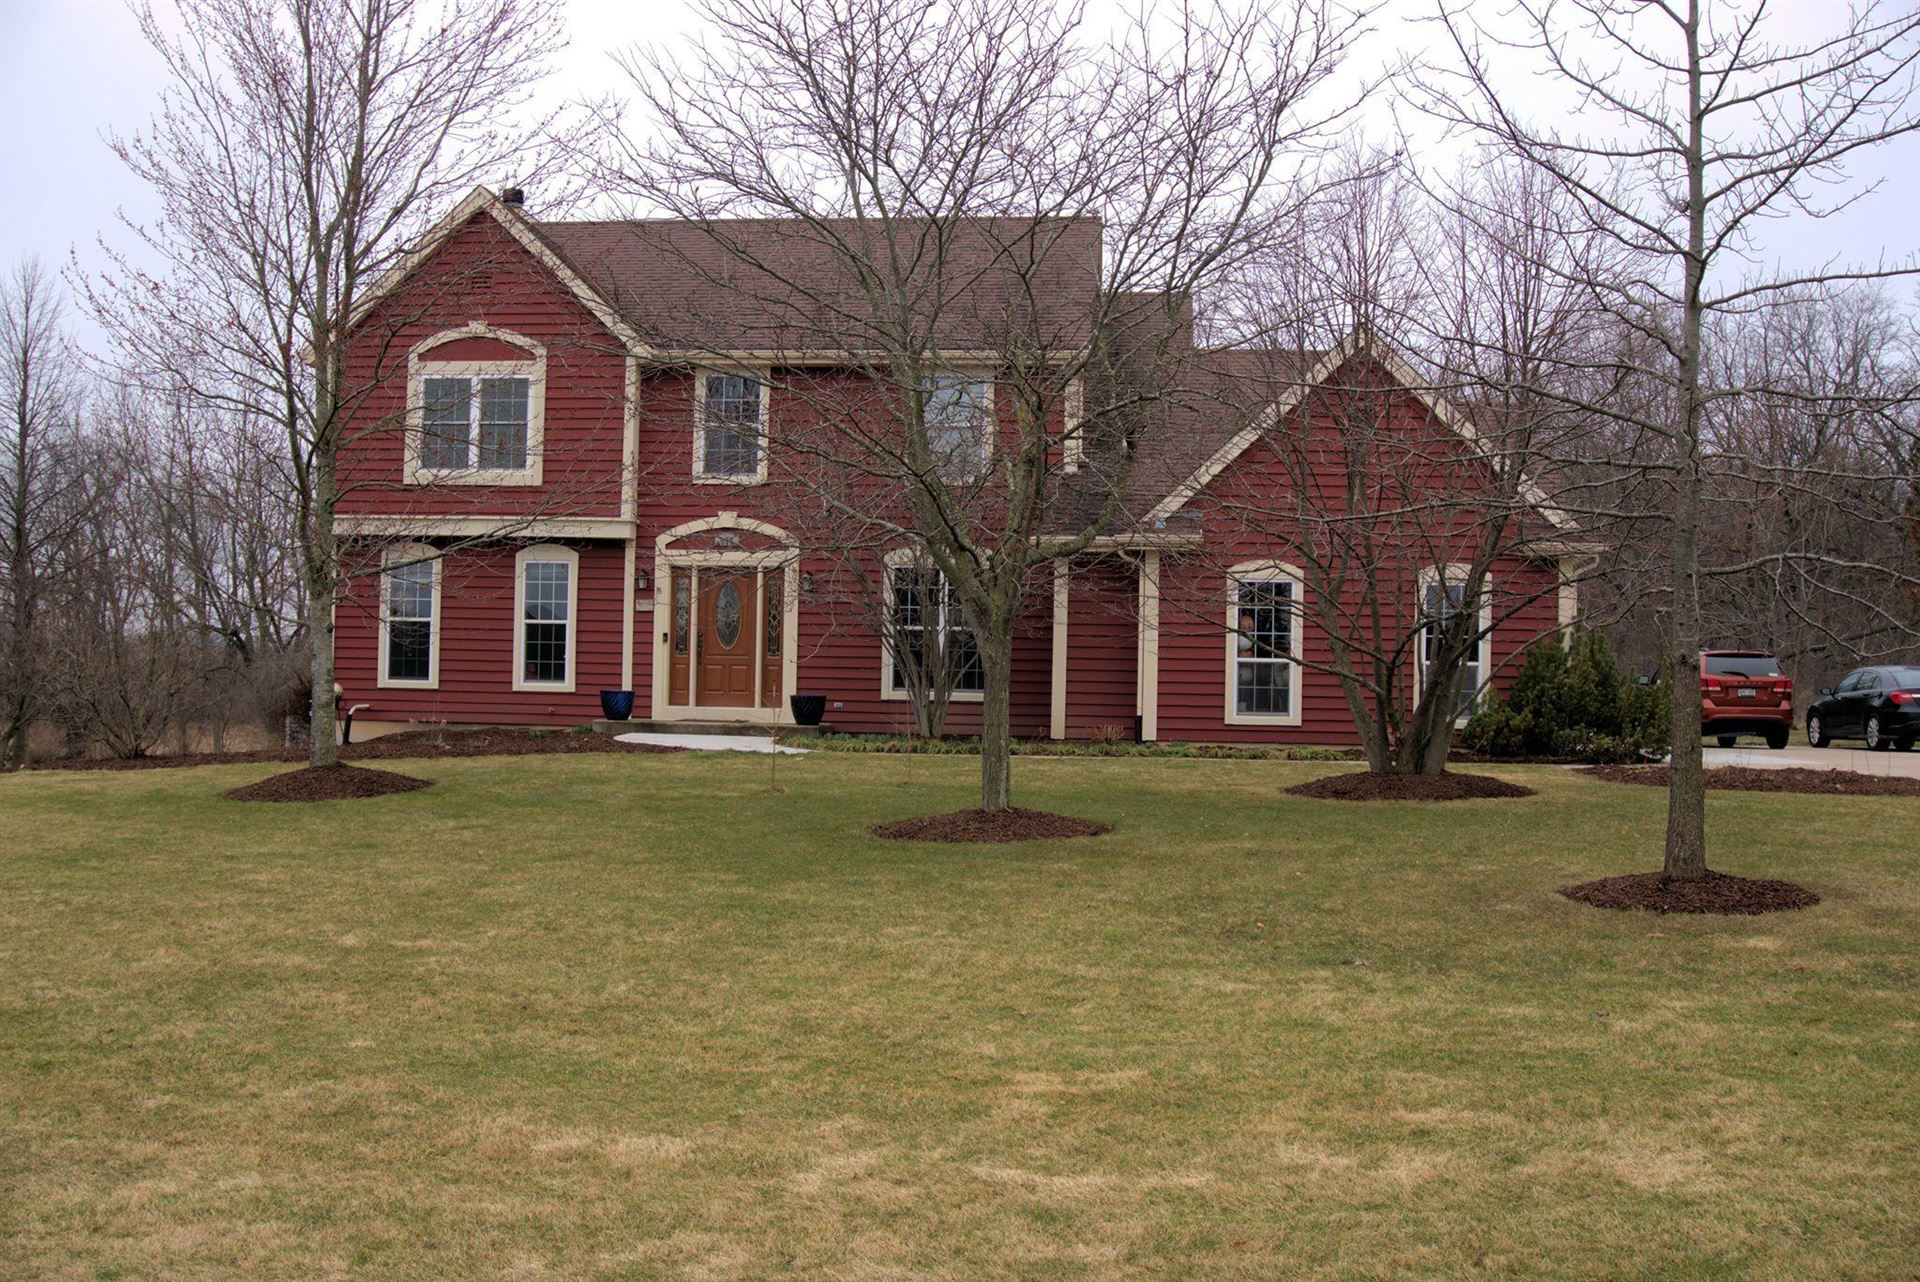 350 Maurice Dr, Union Grove, WI 53182 - #: 1683029